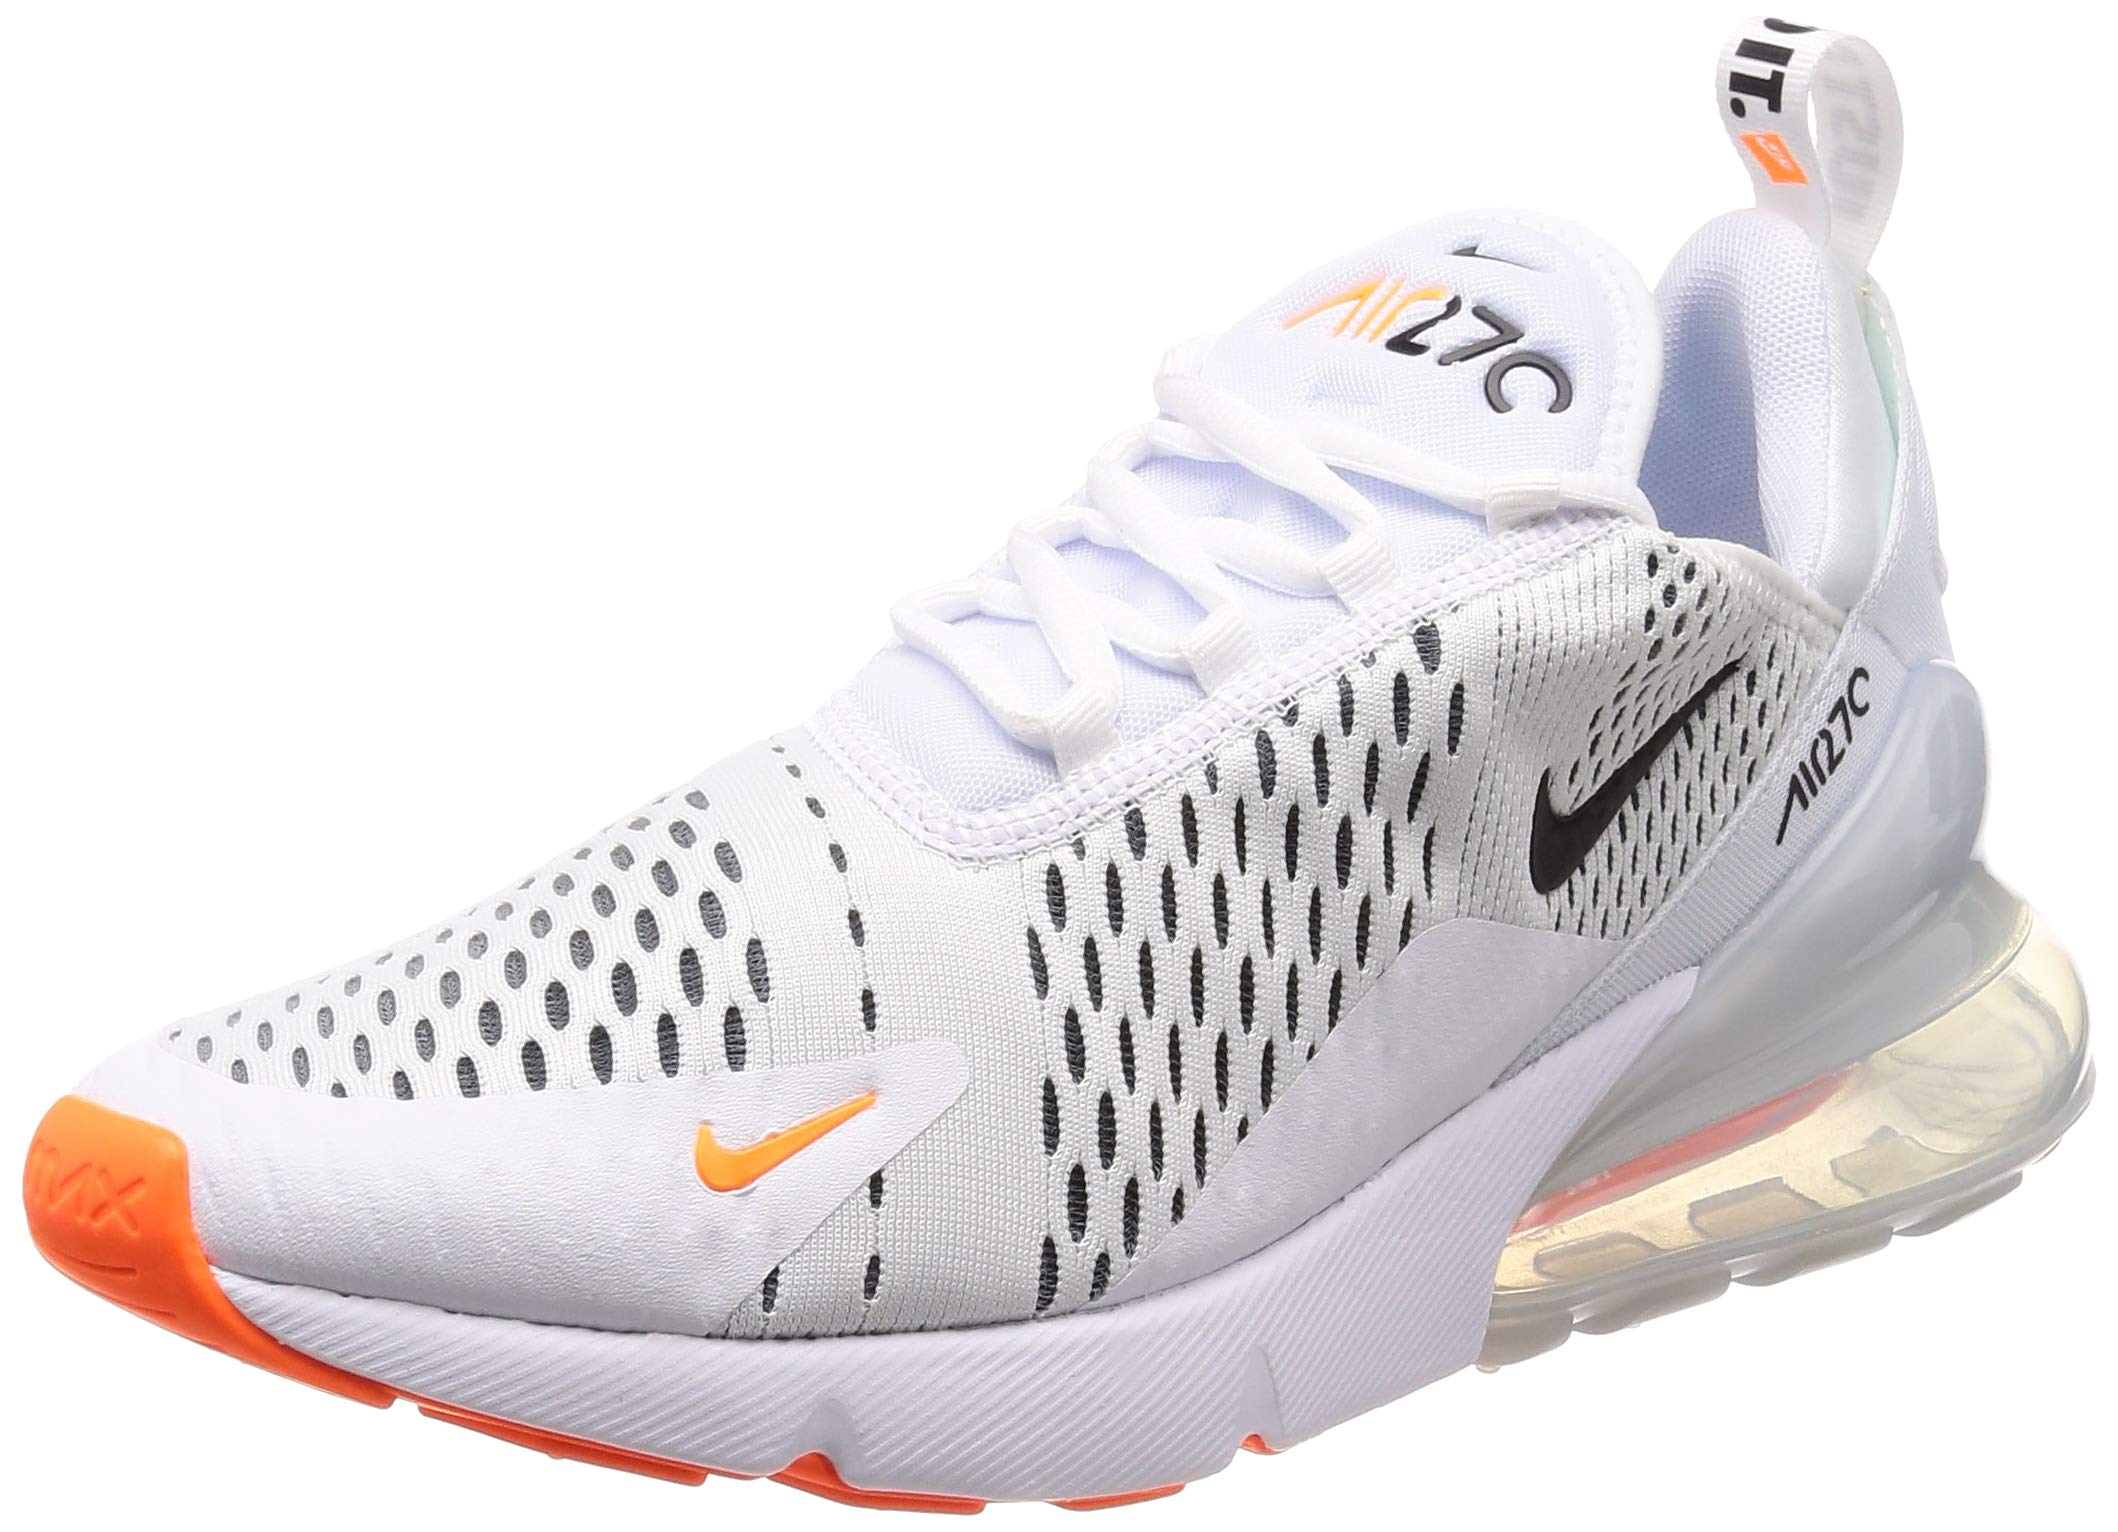 Air Max 270 White Black Total Orange AH8050 106